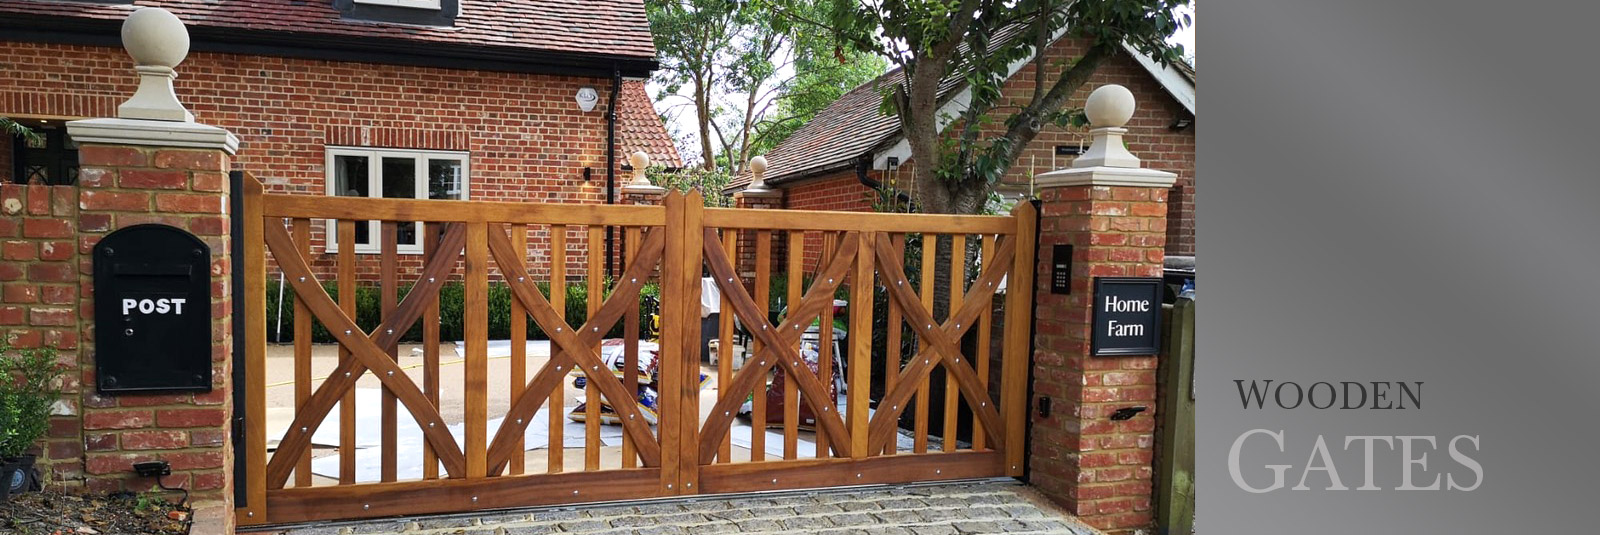 Residential Wooden Gates